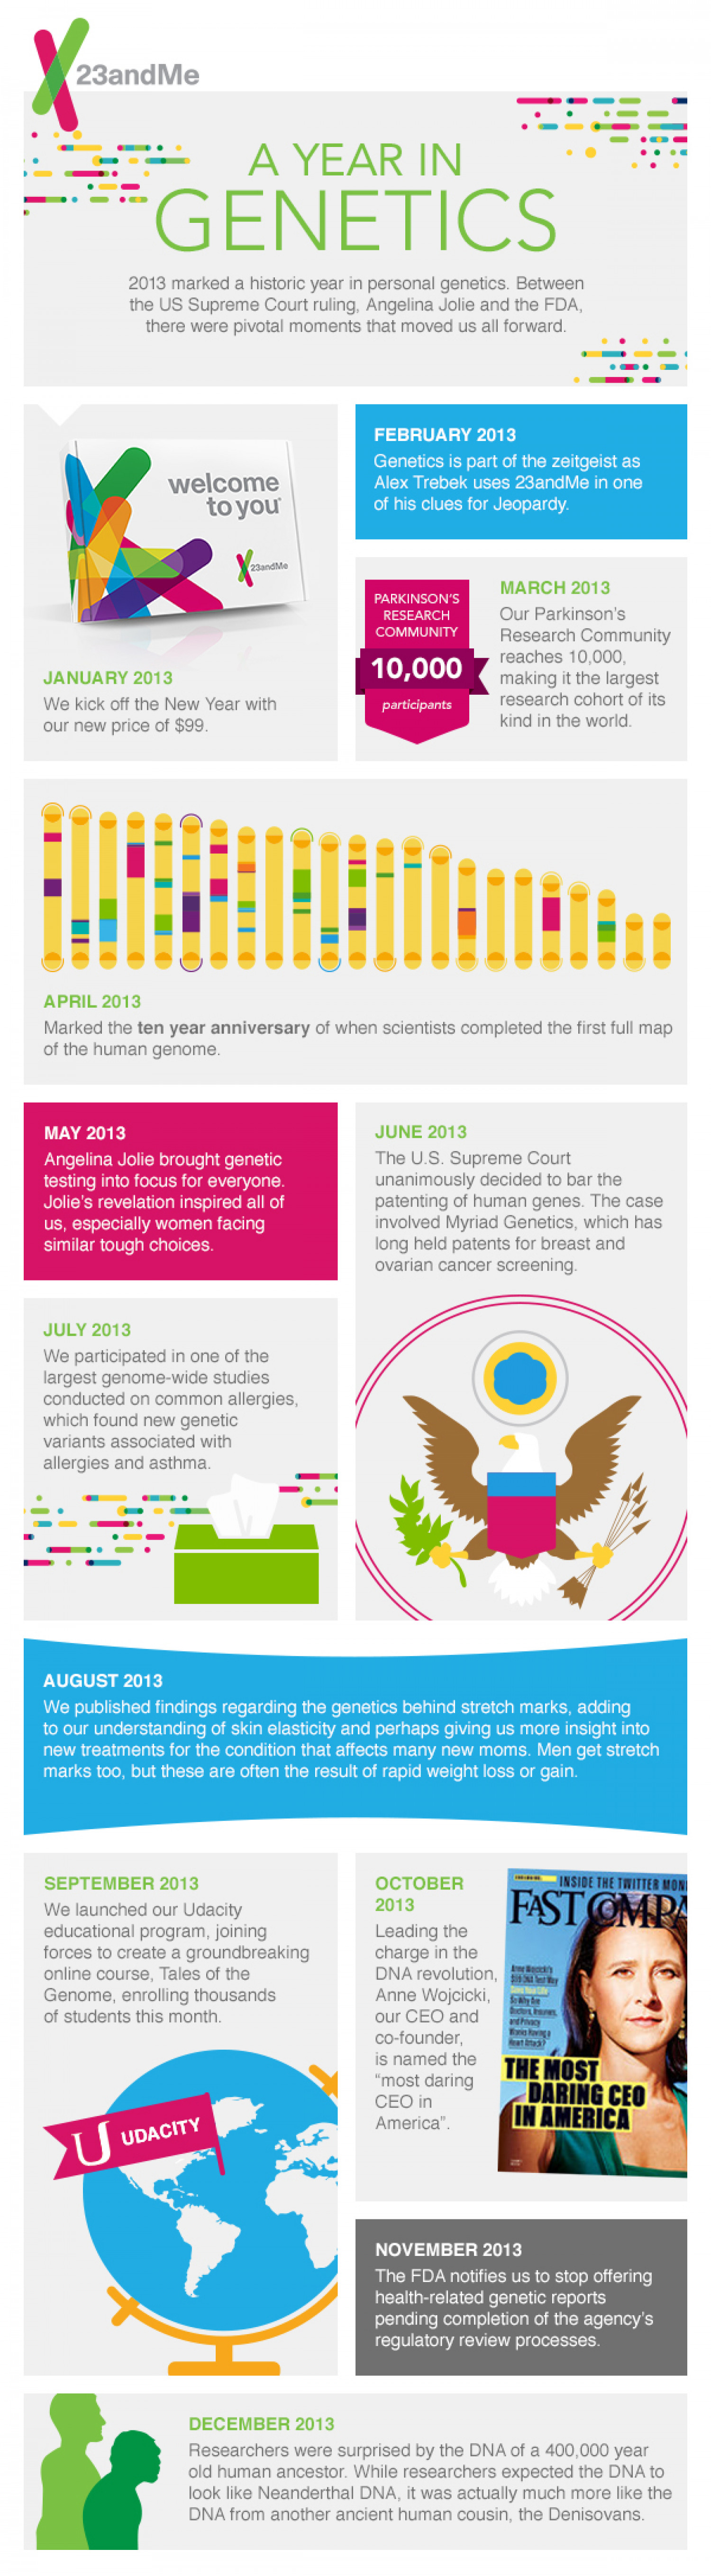 23andMe 2013 Year in Review Infographic